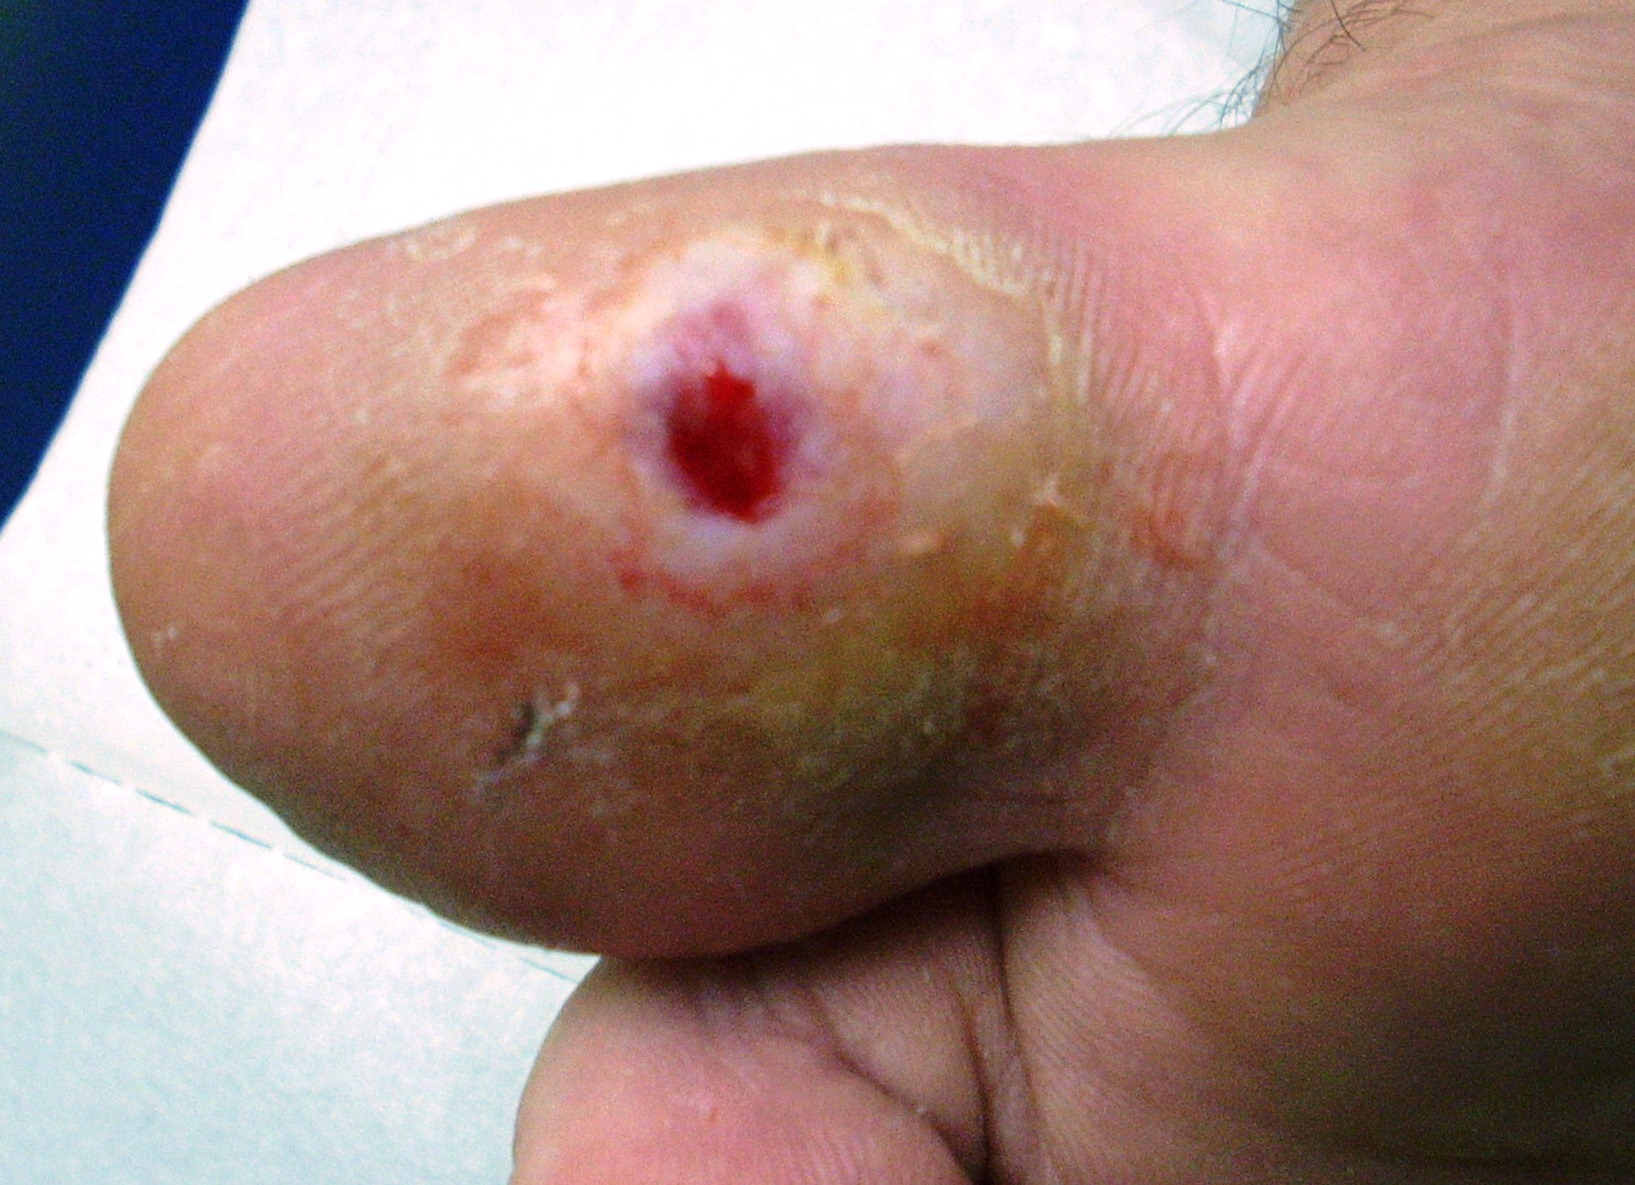 # Diabetic Ulcer Pictures - Diabetes And Exercise